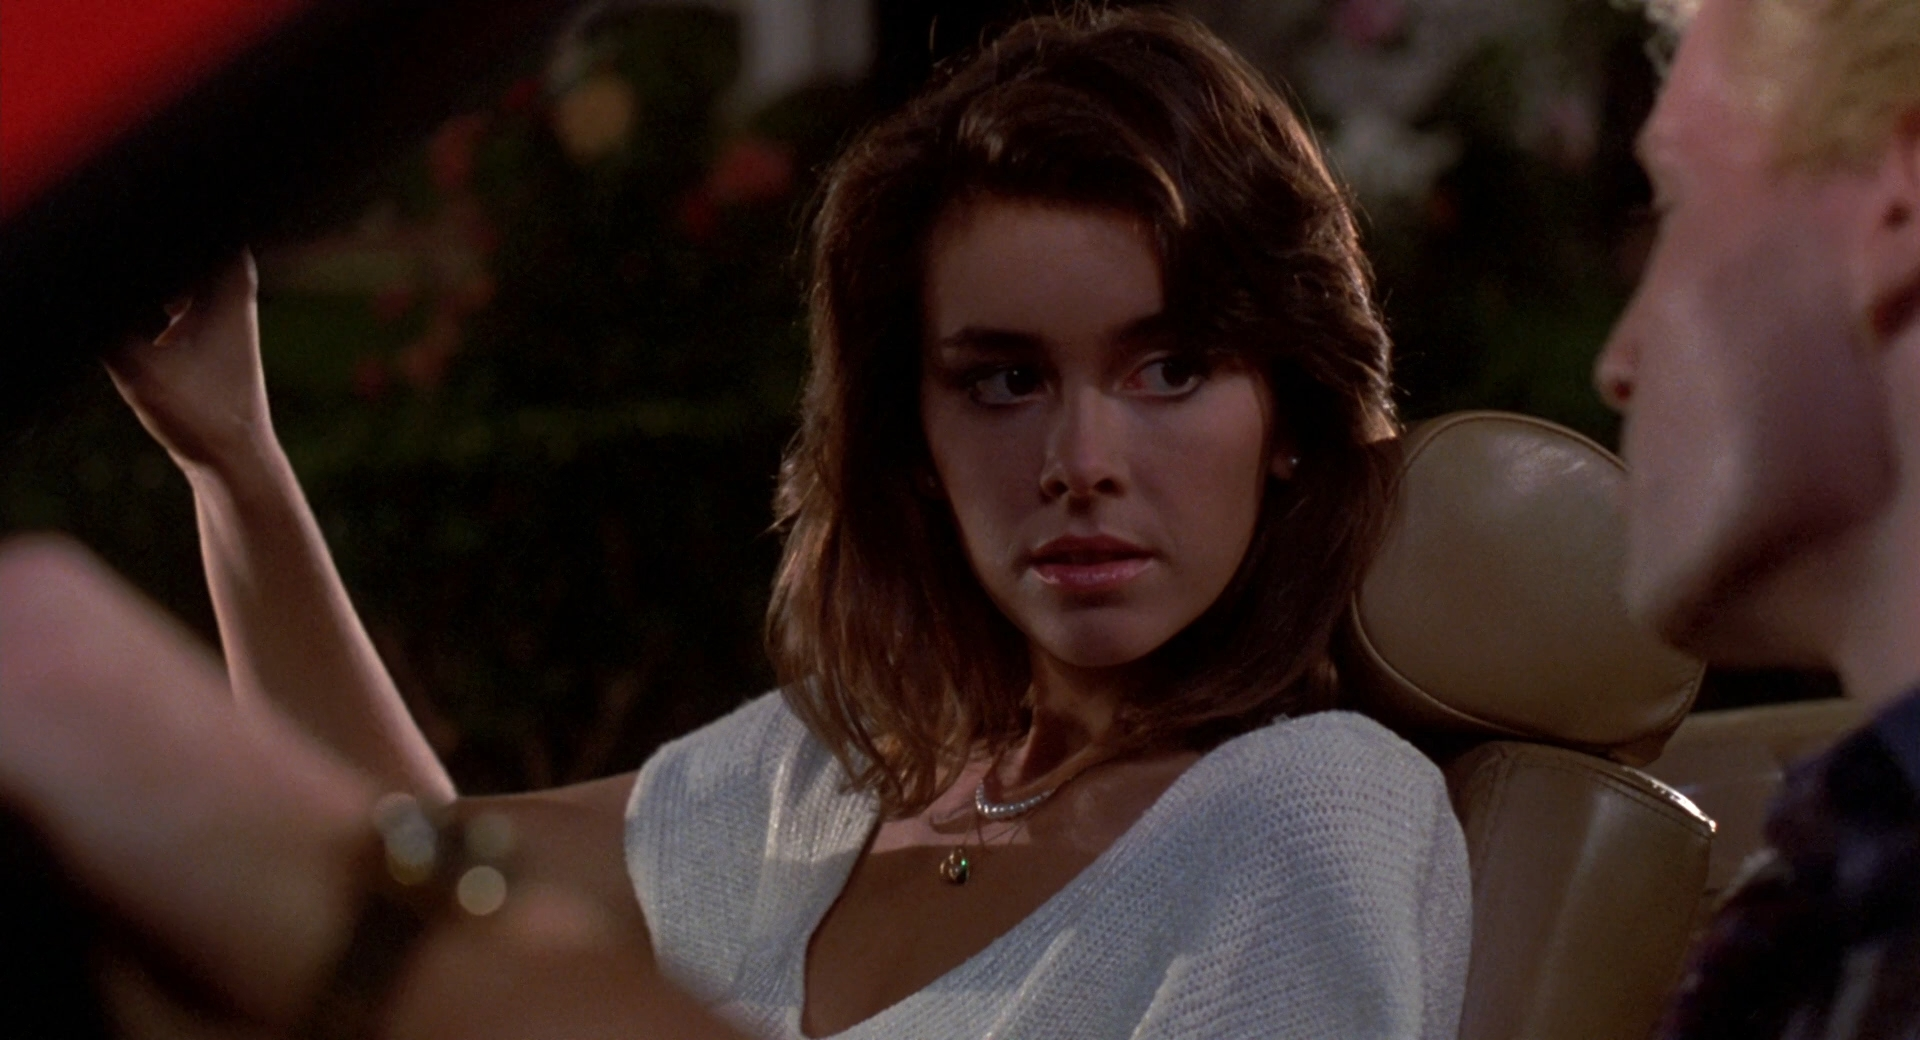 Night of the Creeps (1986) BDRip FHD AC3 5.1 Lat-Ing c/ Sub.